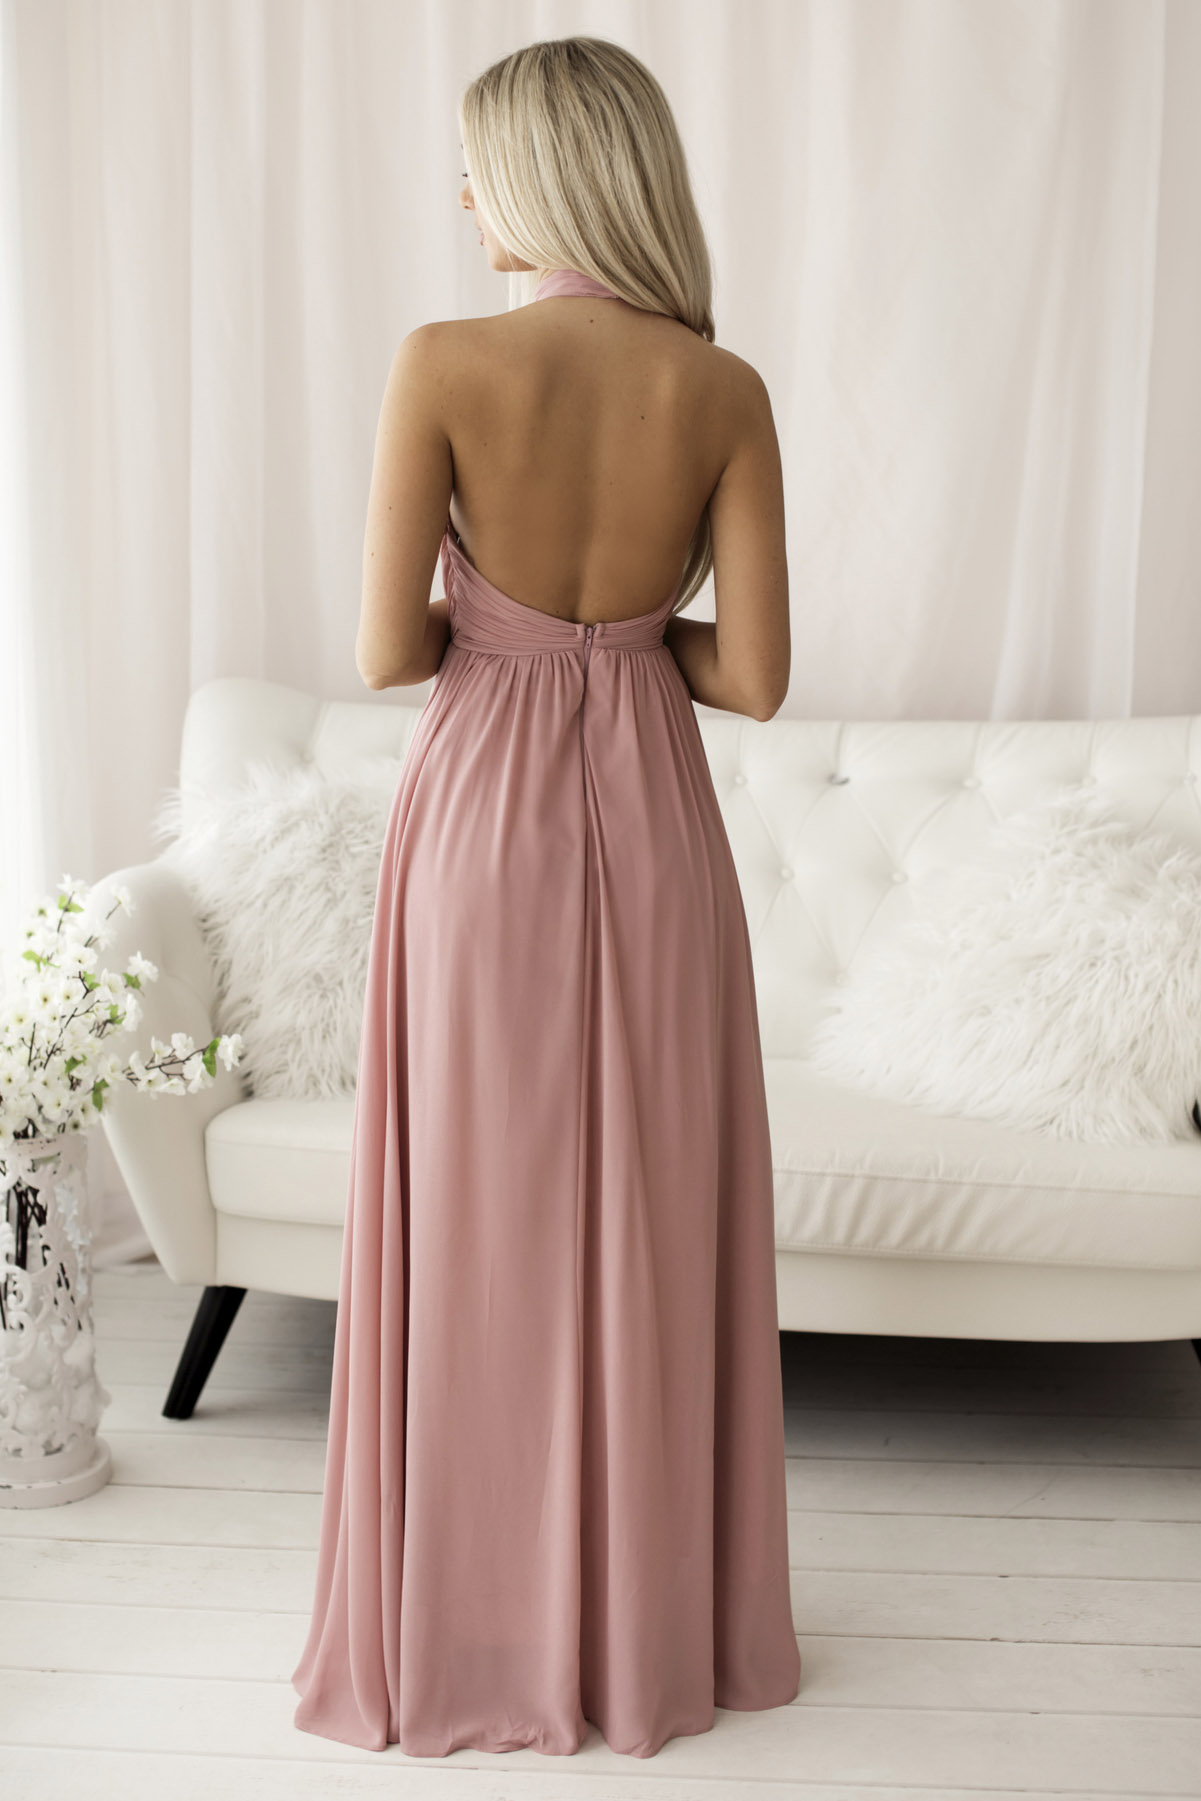 SENAT OPEN BACK  DRESS PINK 68..